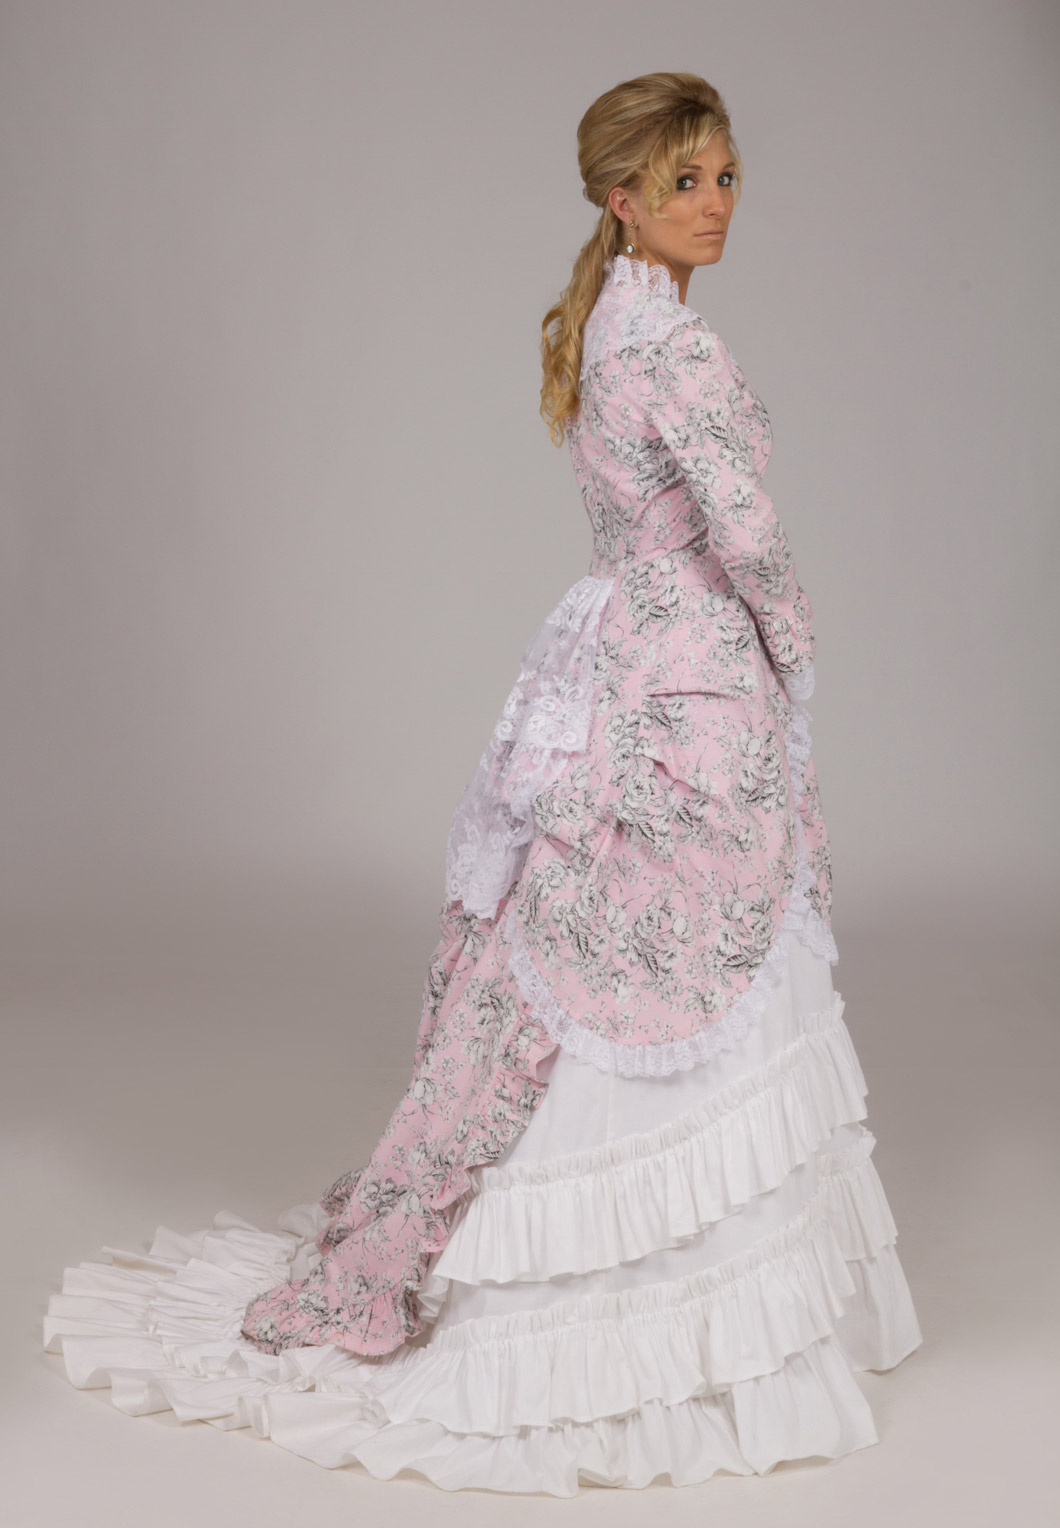 Lady johanna polonaise ensemble recollections for Old west wedding dresses